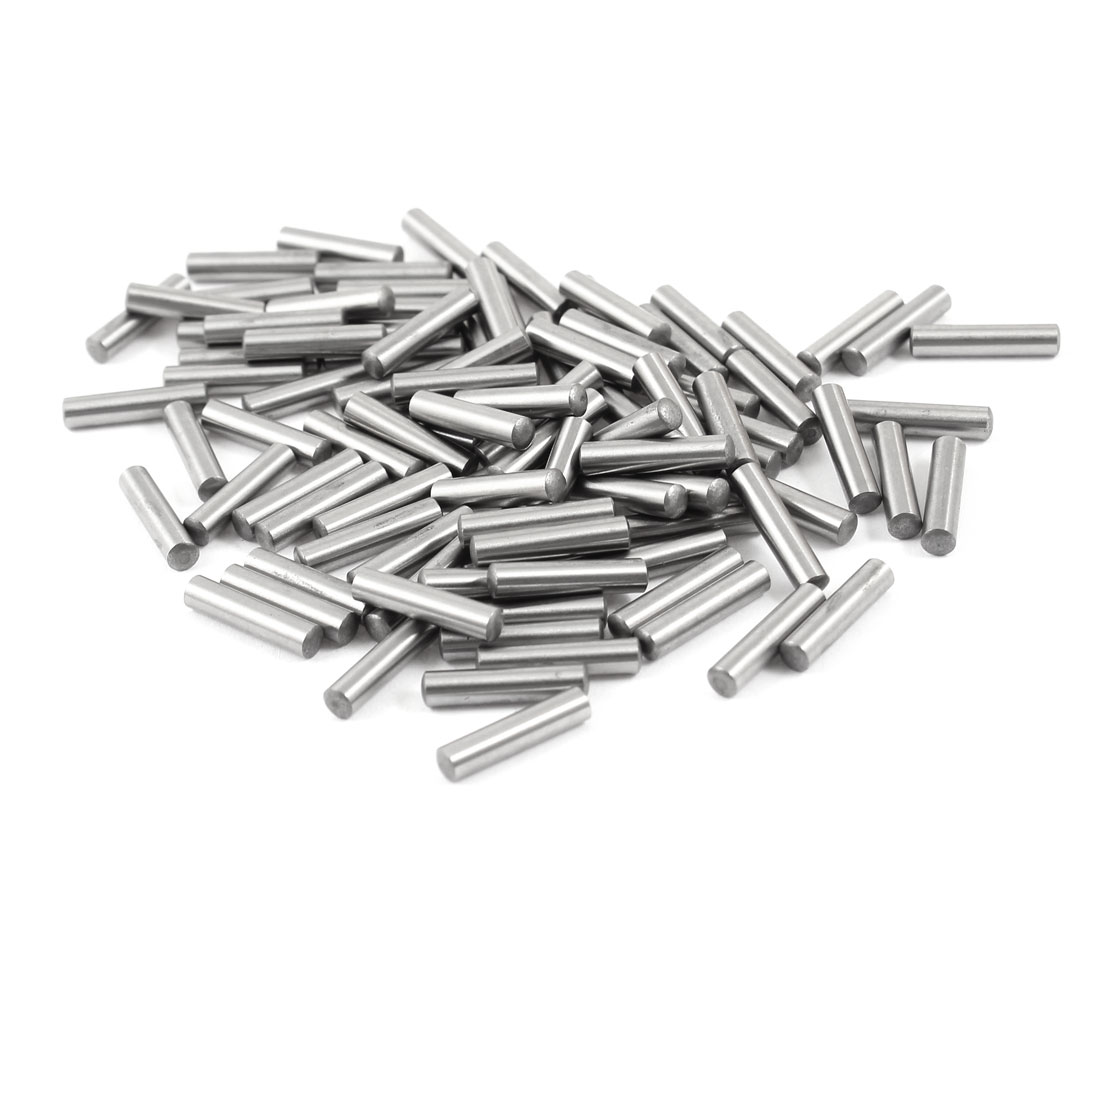 100 Pcs Stainless Steel 3.45mm x 15.8mm Parallel Dowel Pins Fasten Elements Silver Tone